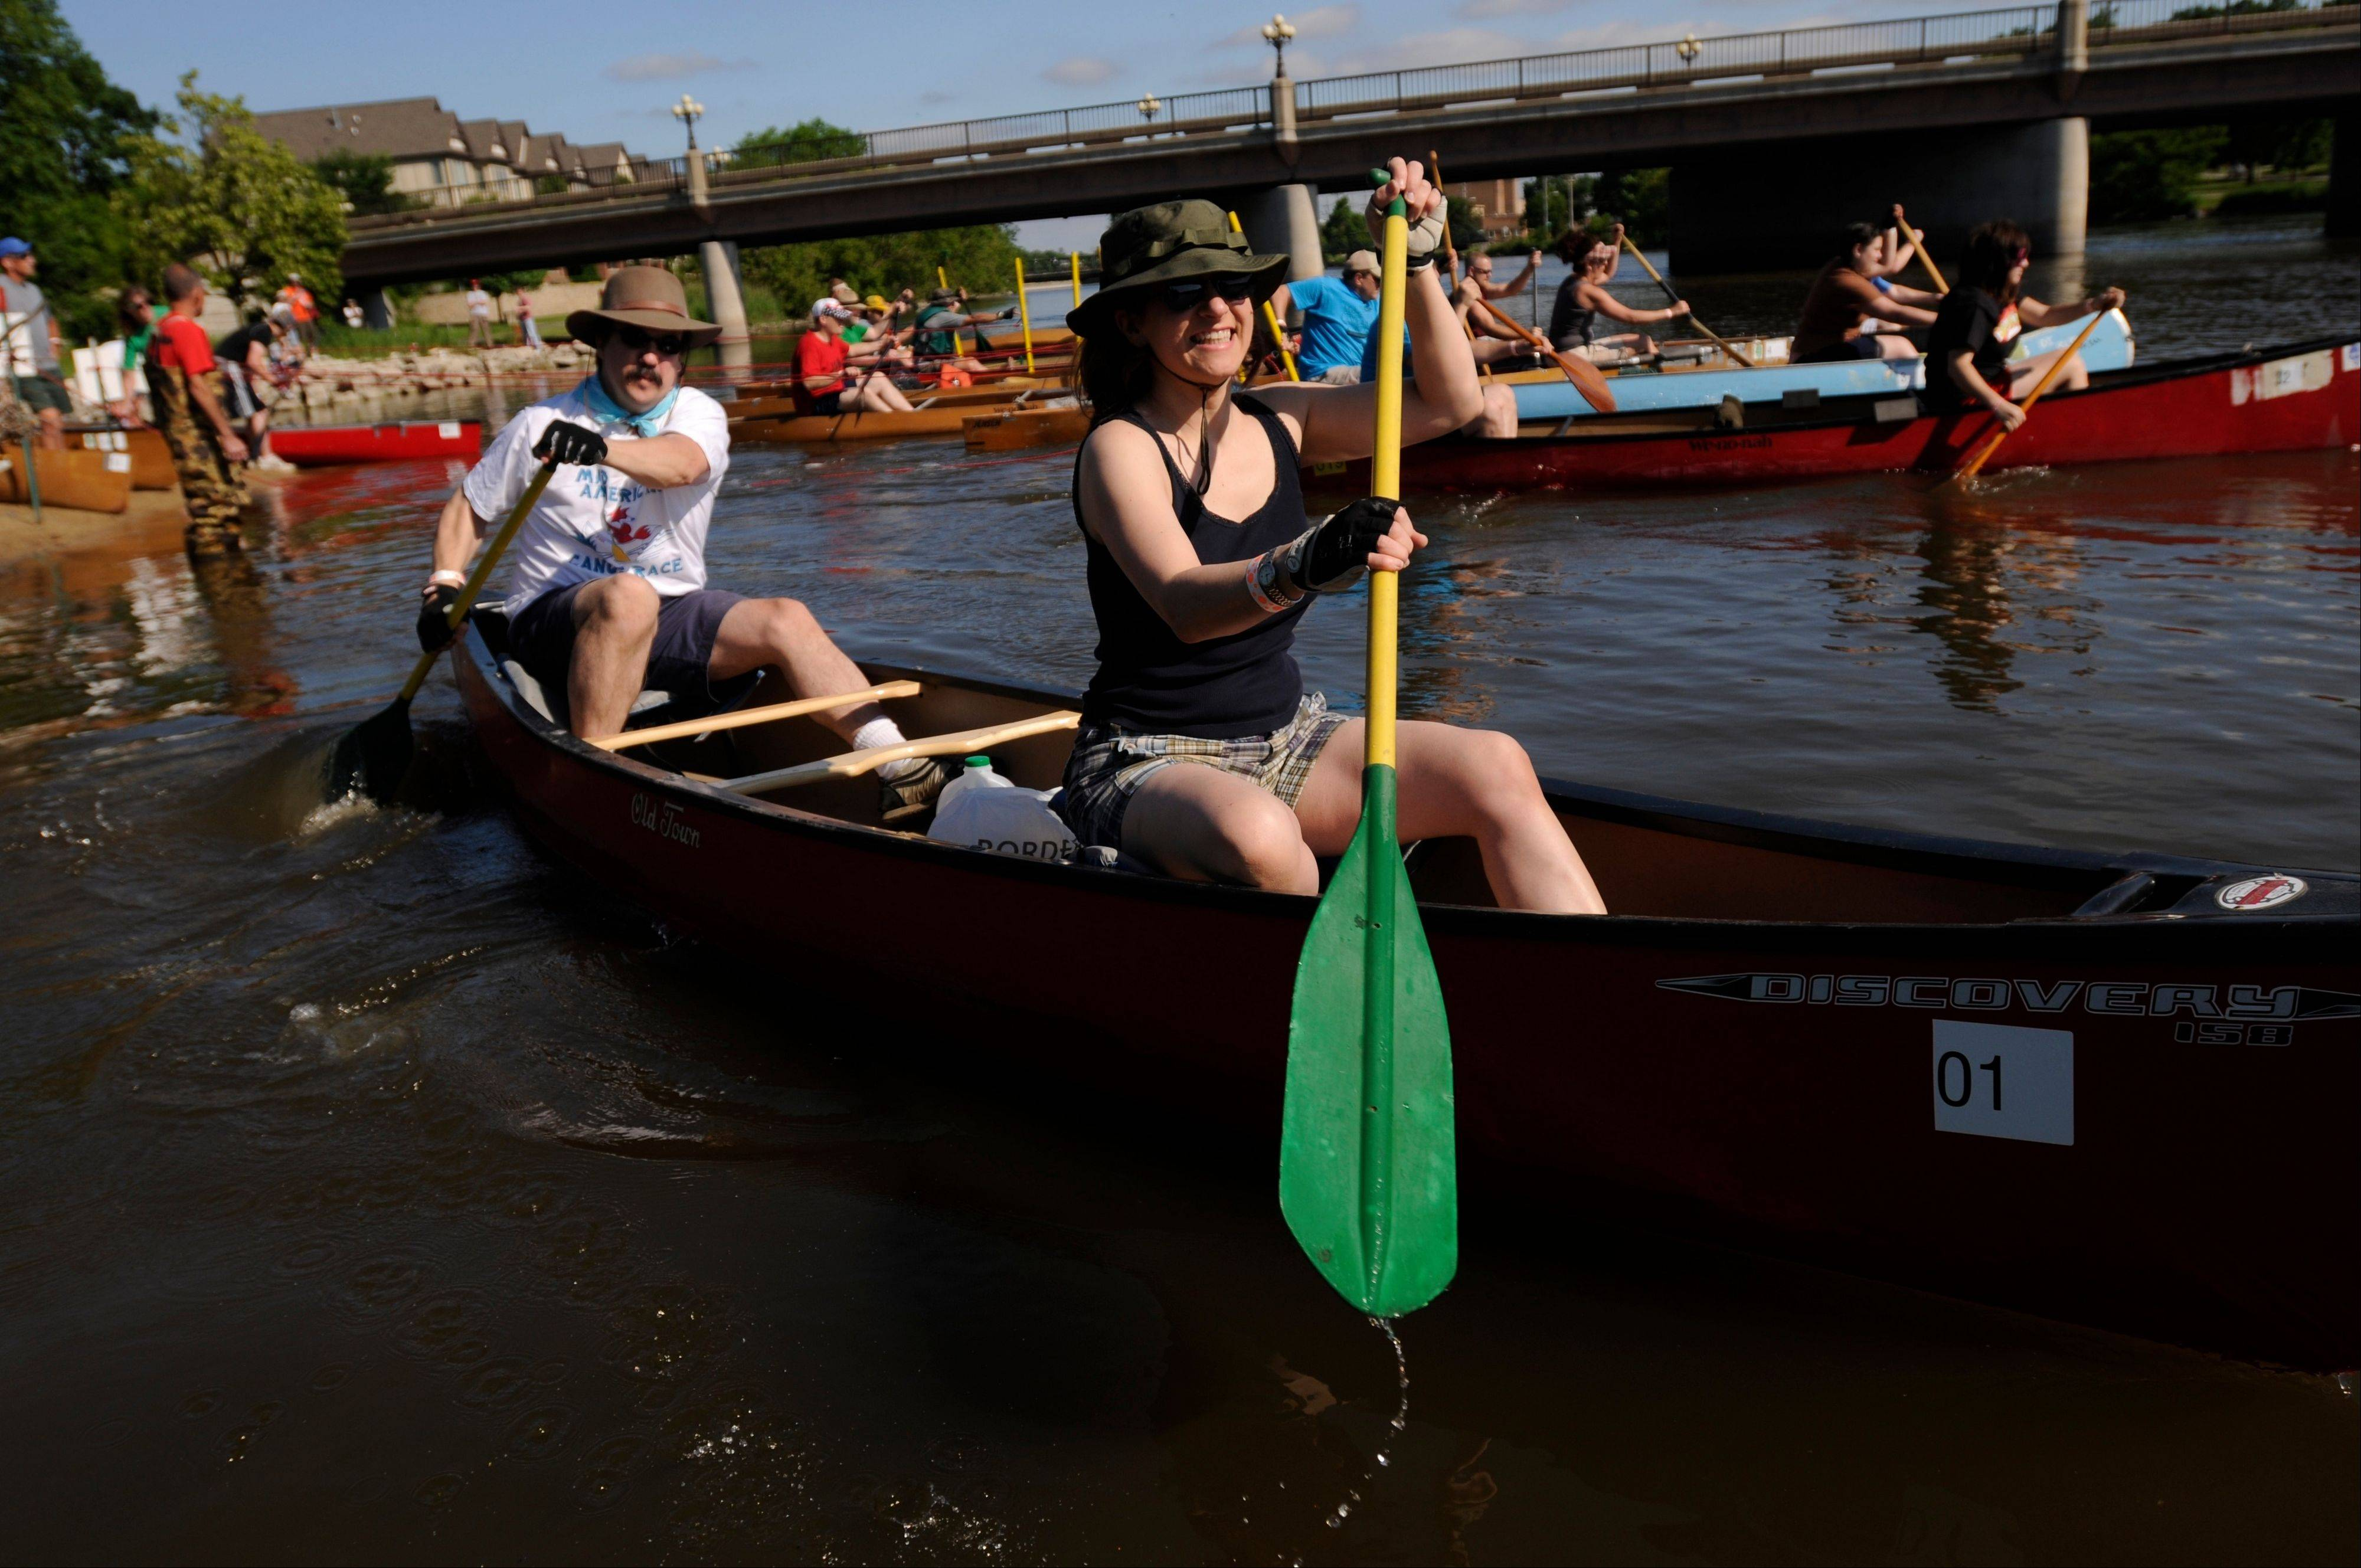 The Mid-American Canoe and Kayak Race on the Fox River is fun for families or groups of friends. There are competitive and open divisions.